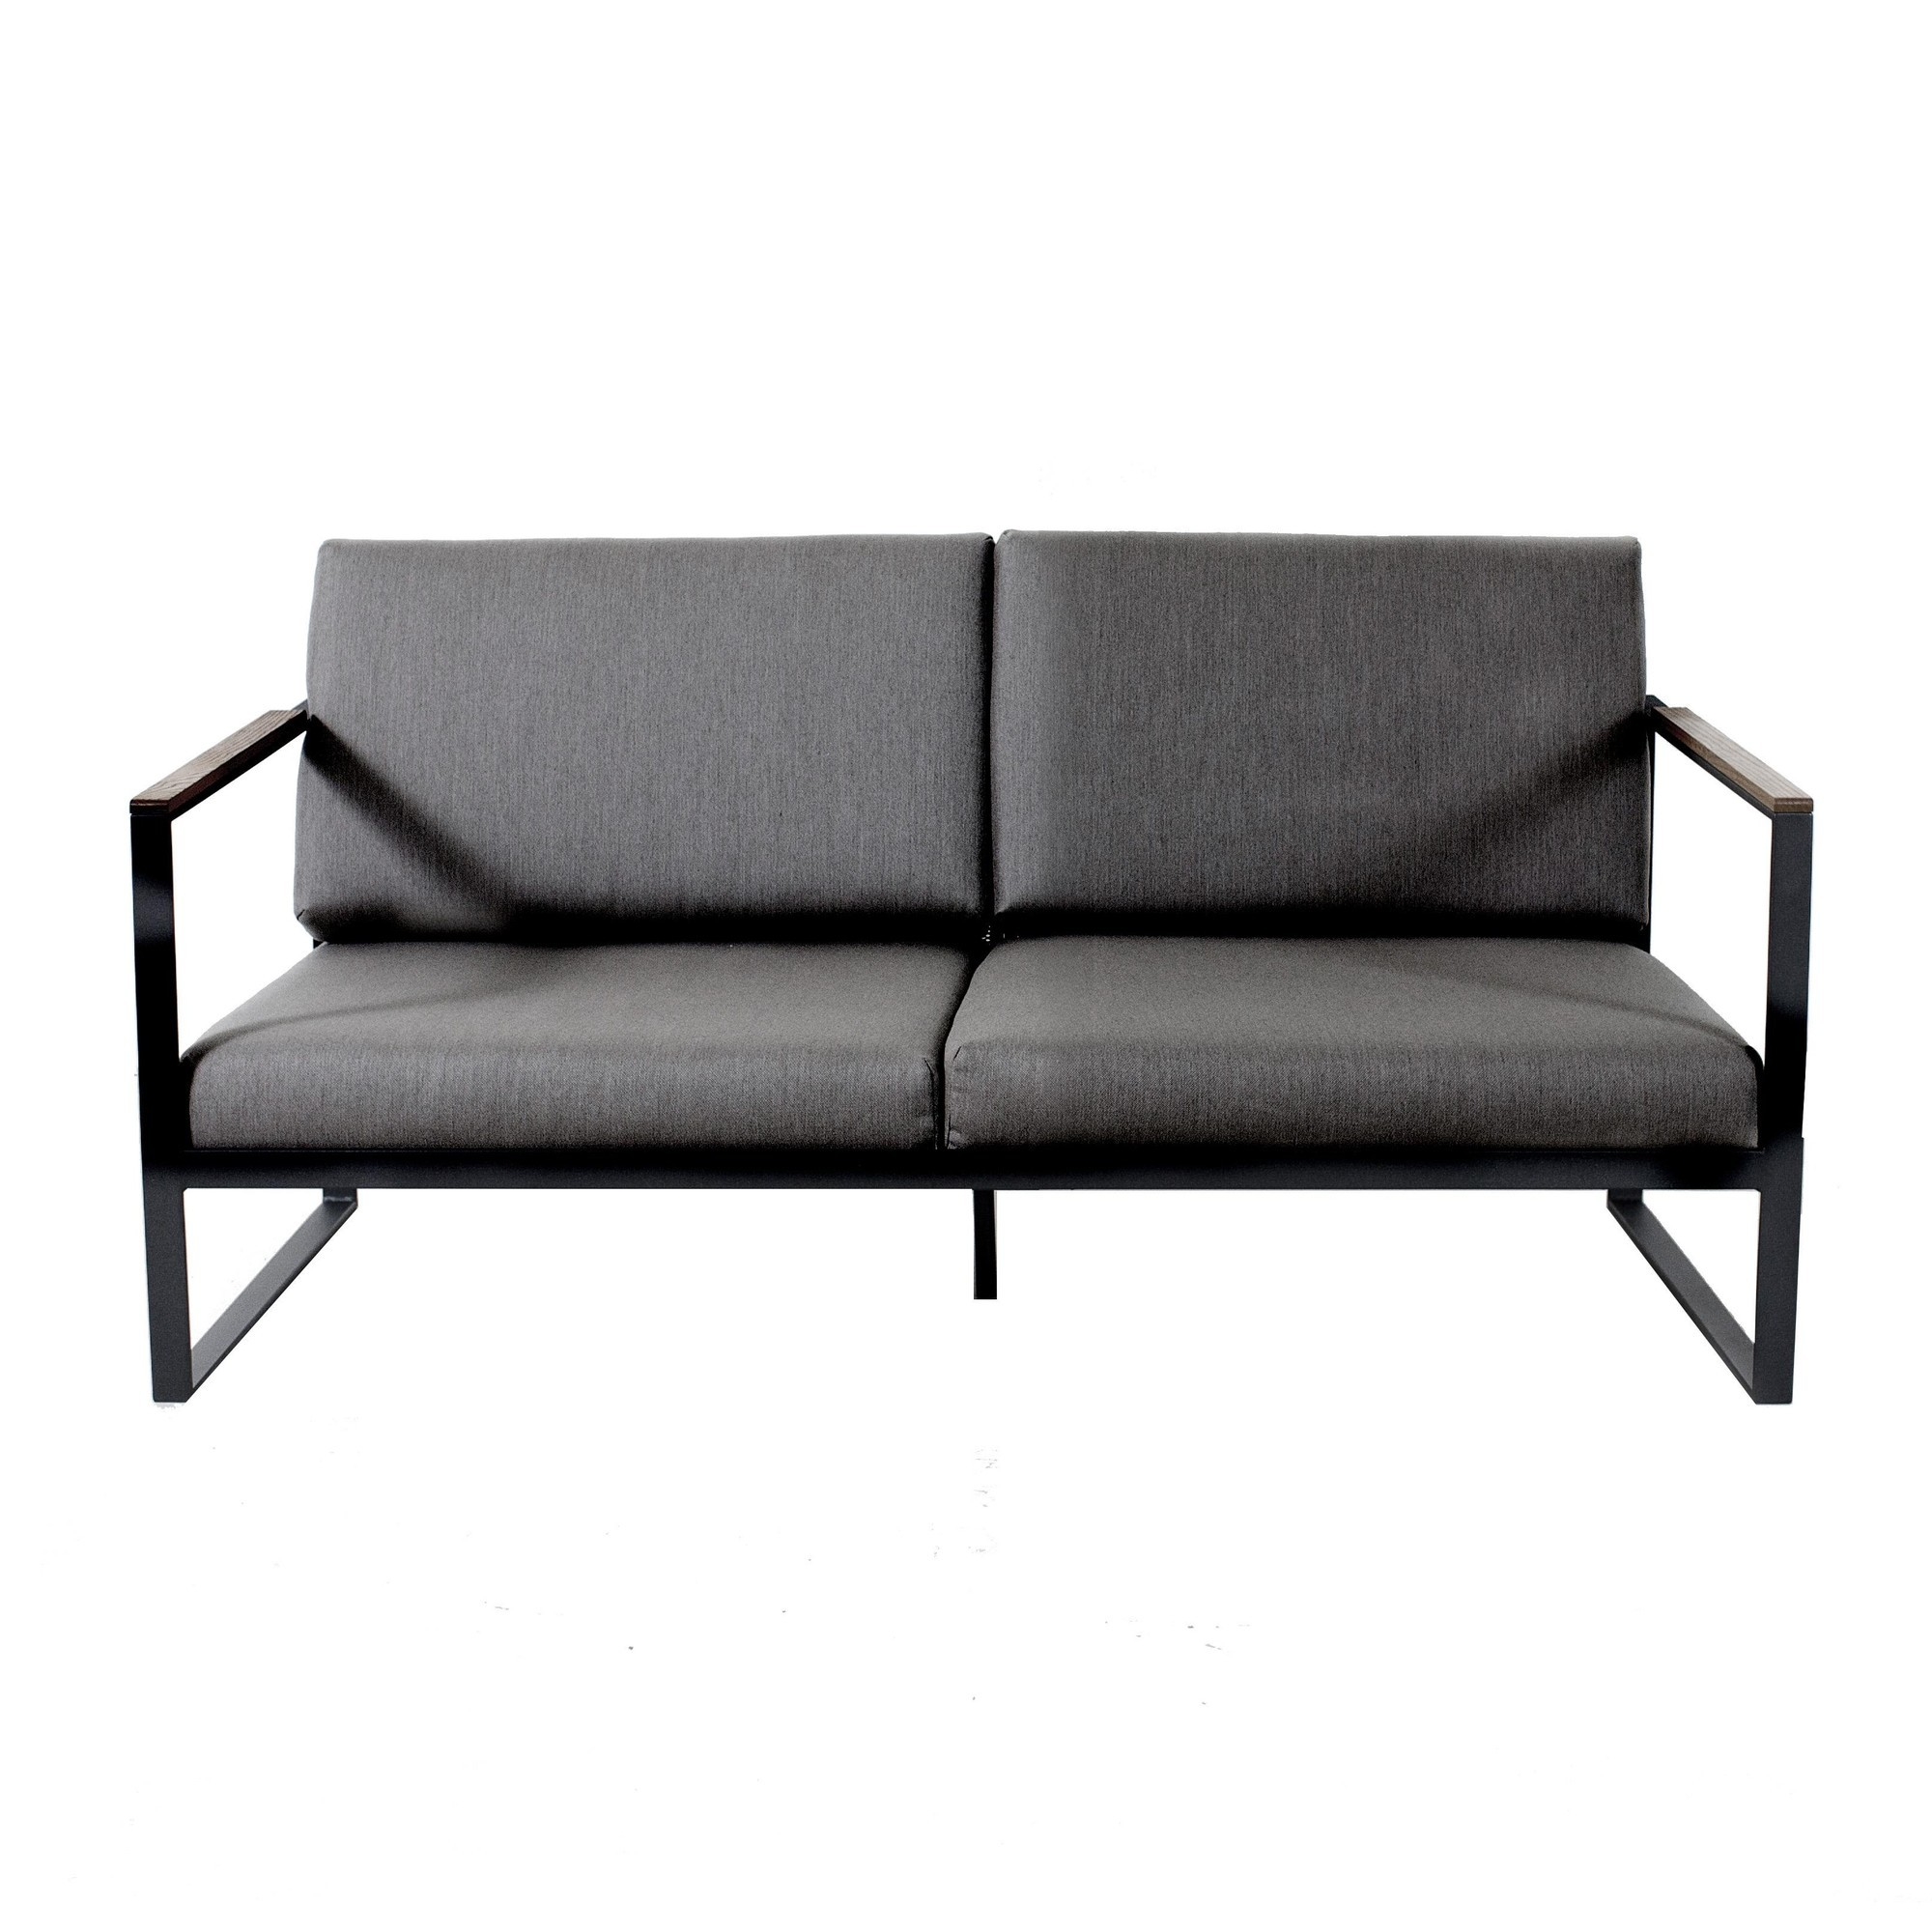 Röshults Garden Easy 2-Seater Outdoor Sofa | AmbienteDirect